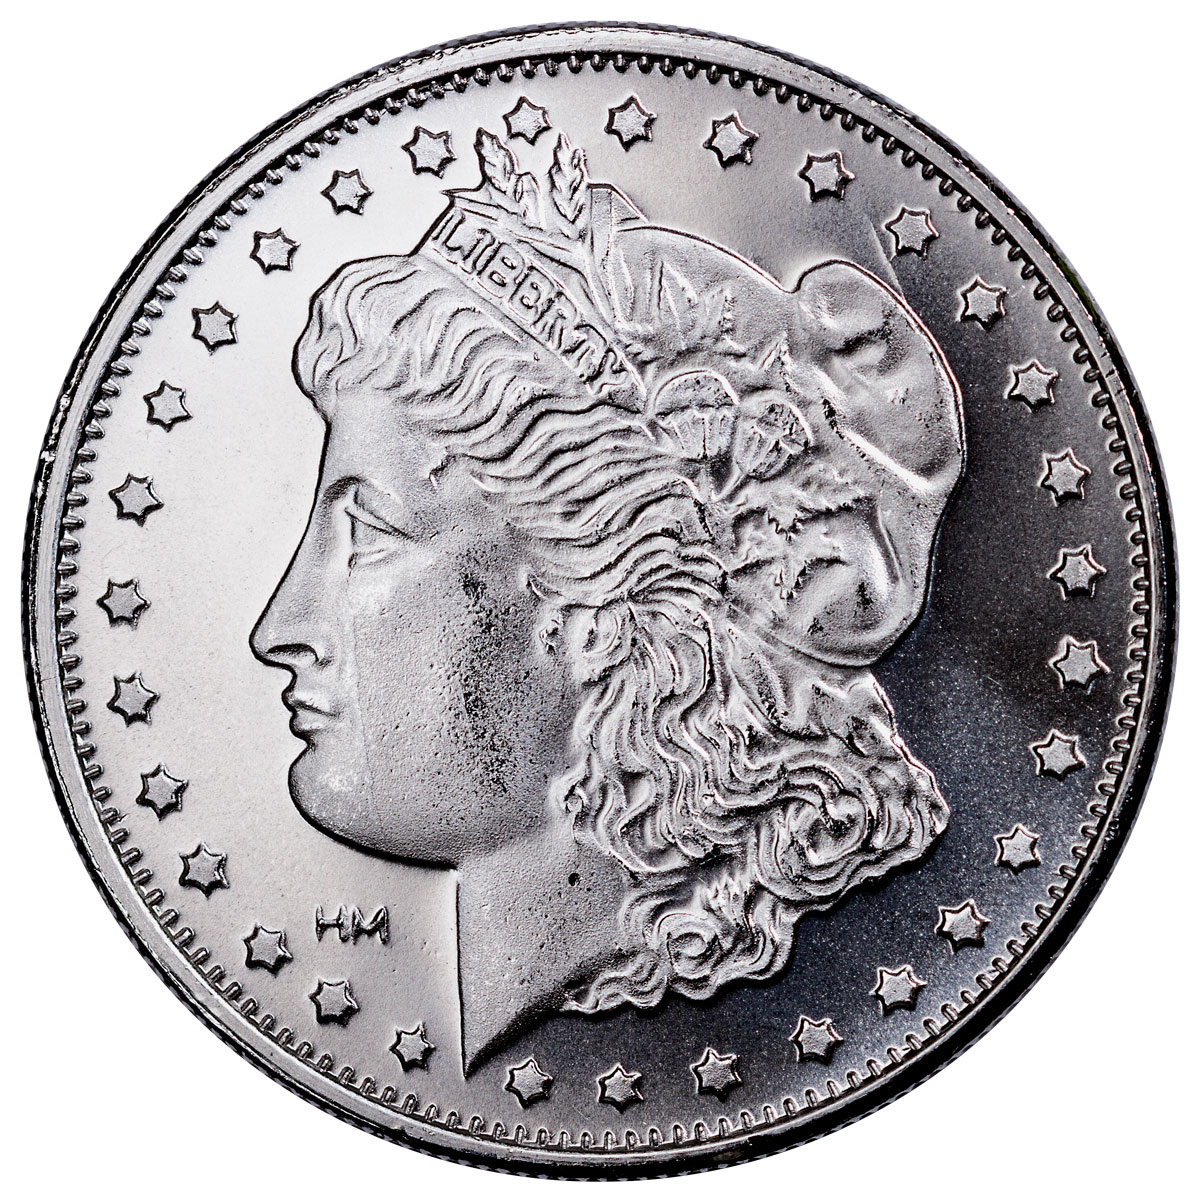 Highland Mint Morgan Dollar Design 1 oz Silver Round-25% Rotated Die